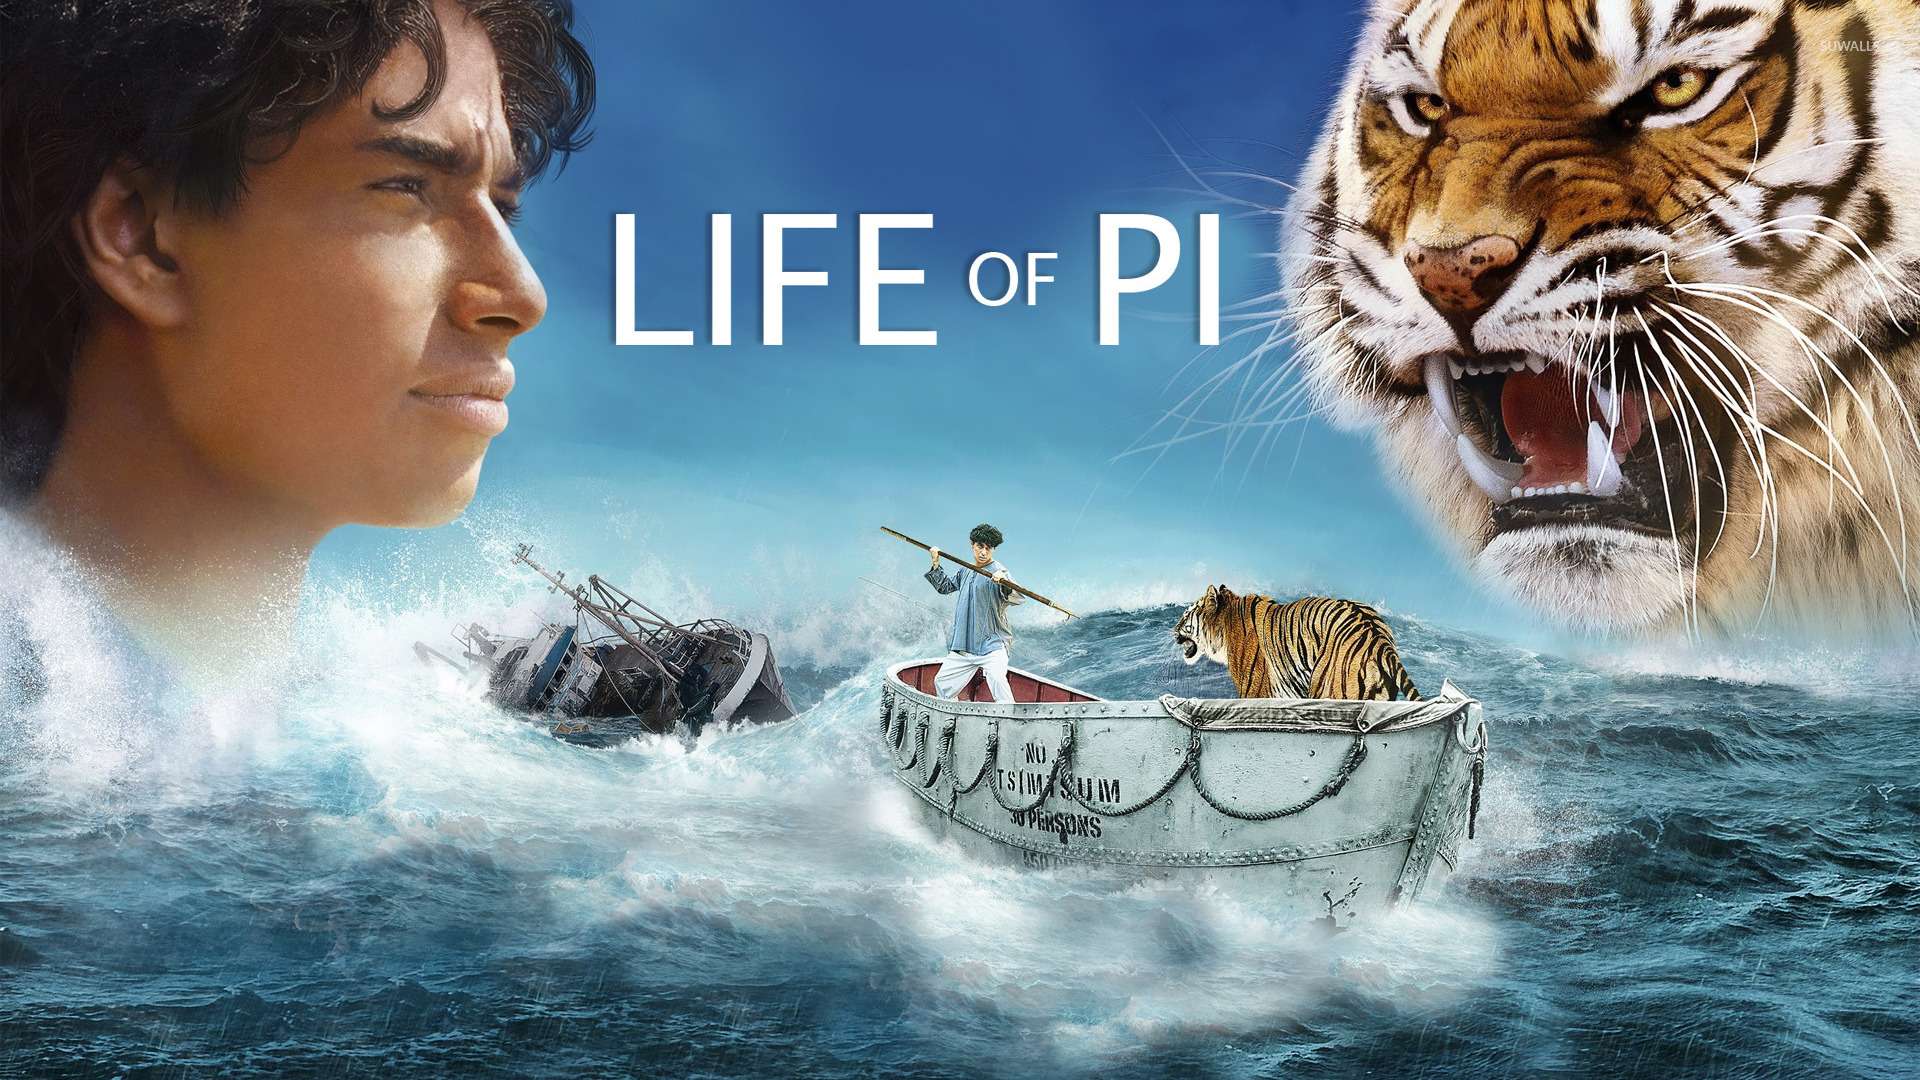 Pi patel life of pi 2 wallpaper movie wallpapers for Life of pi patel